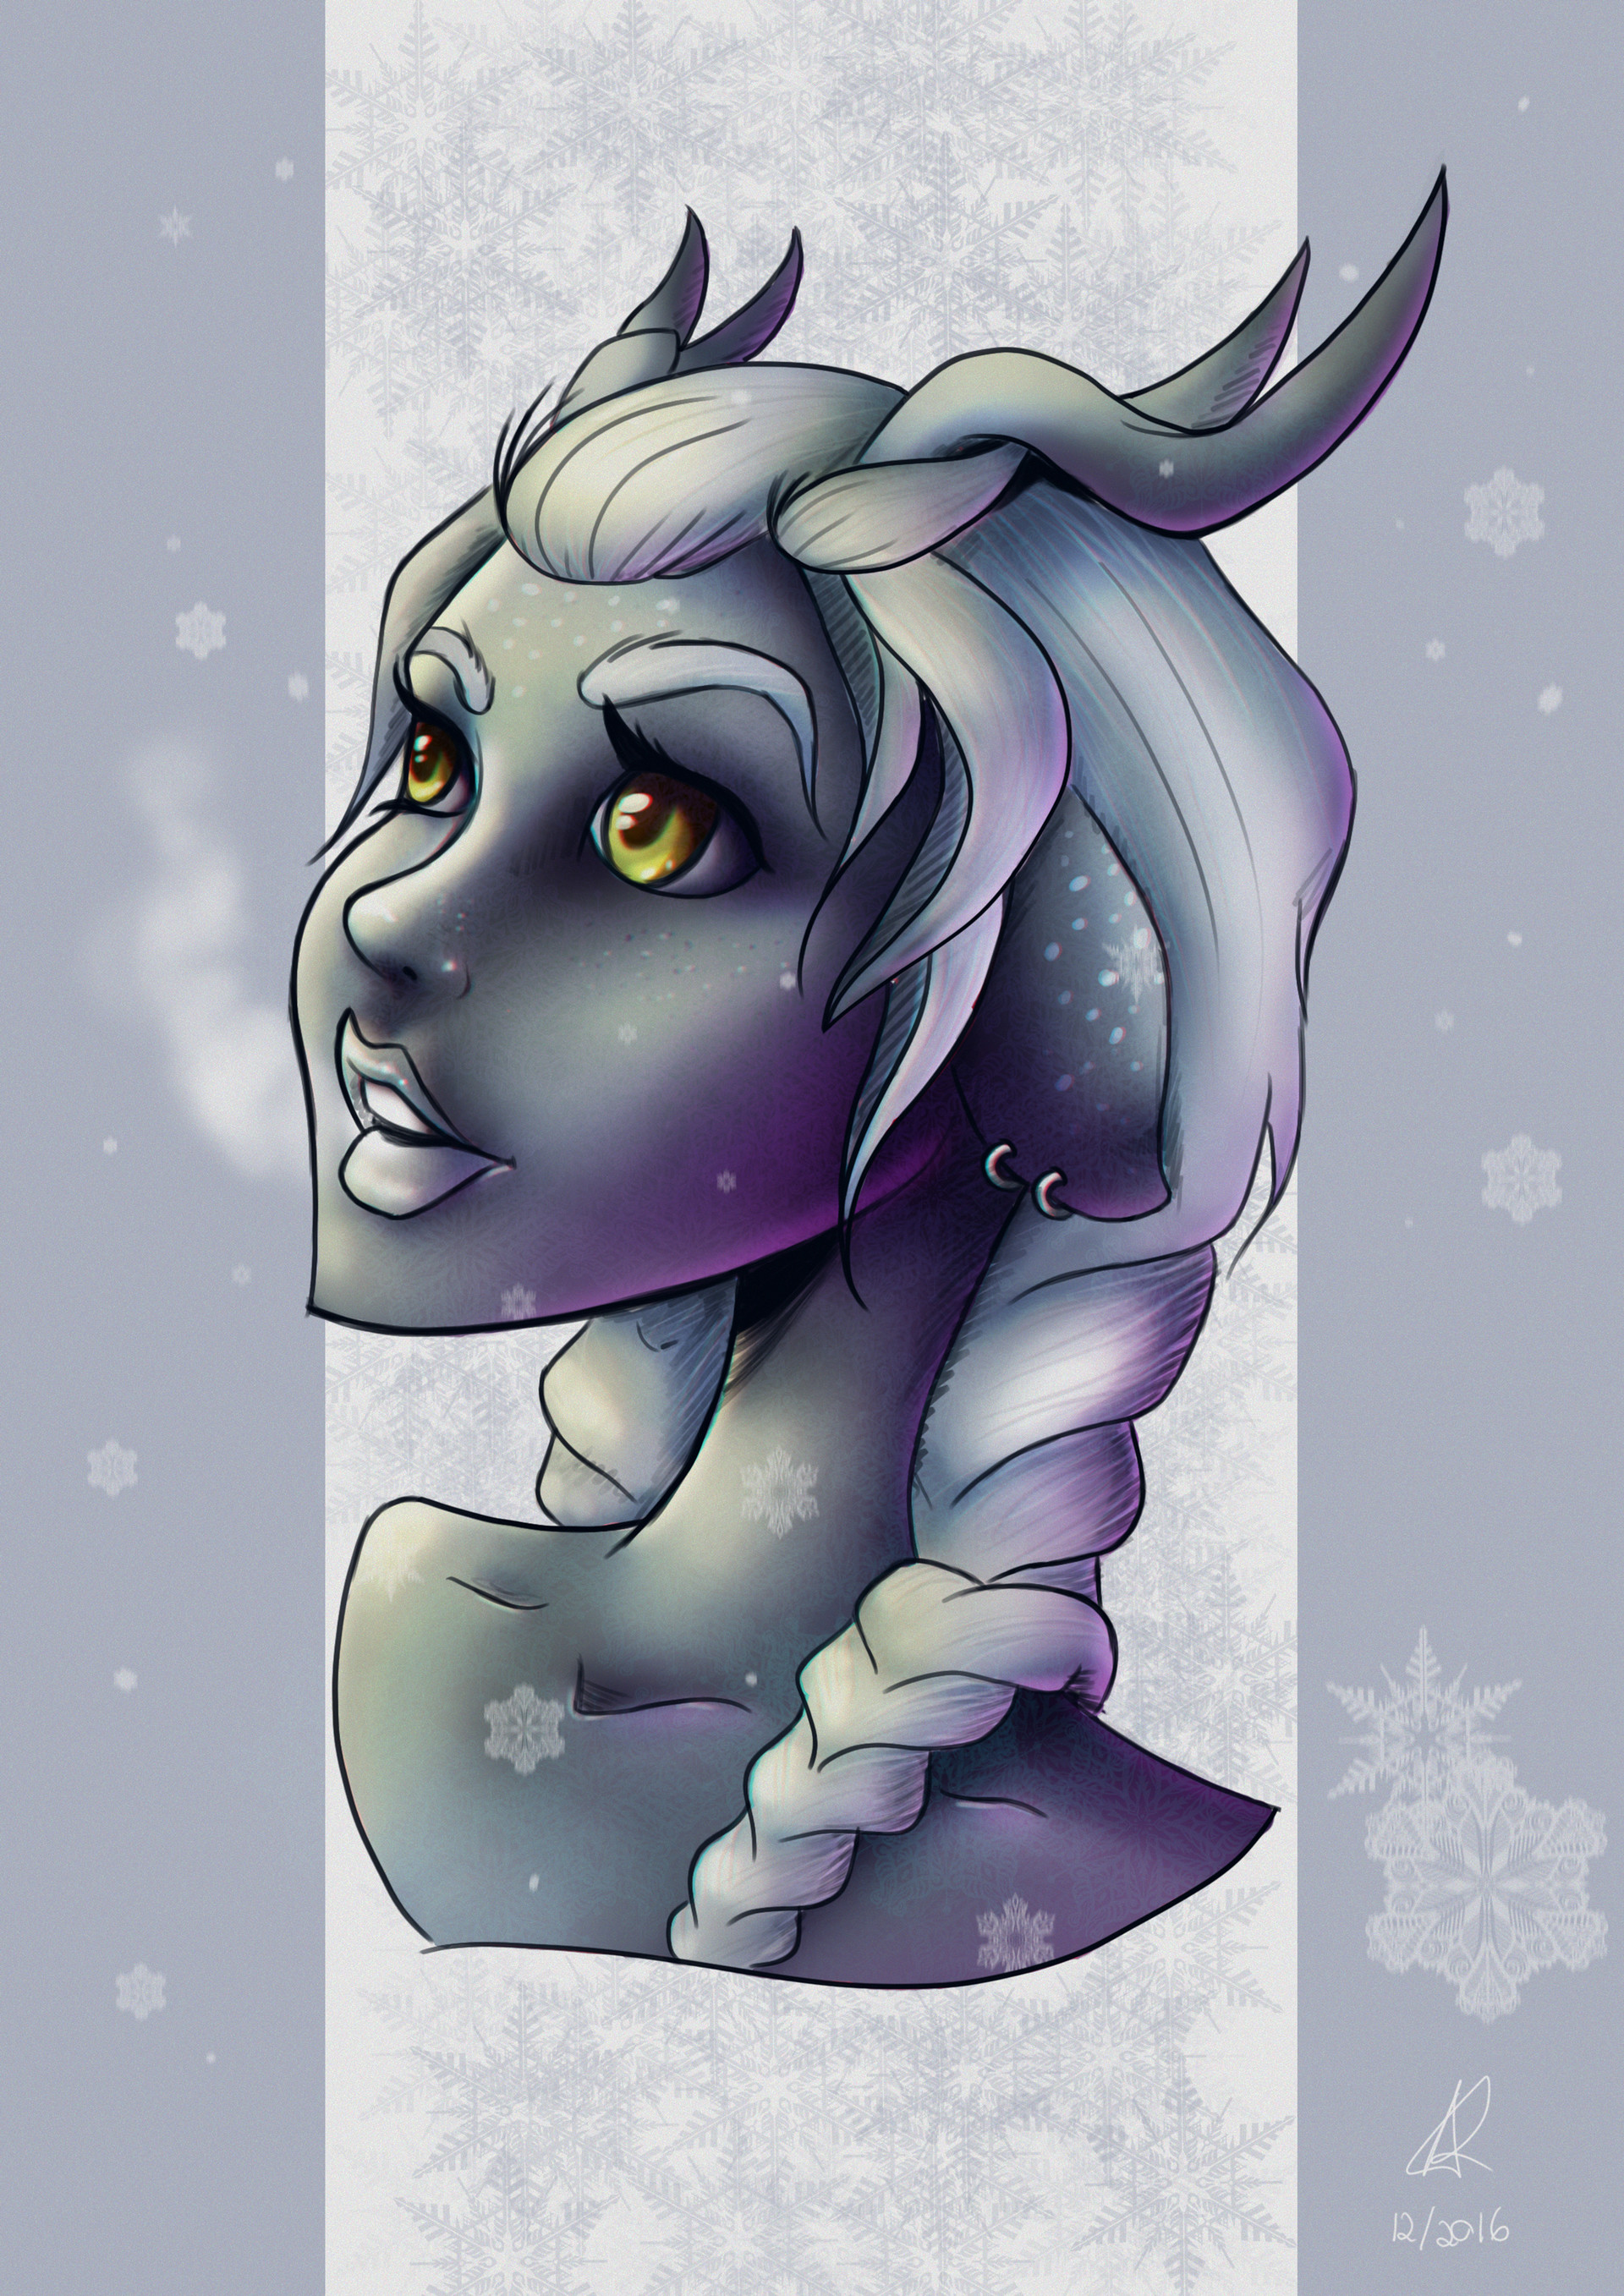 Digi nana winter deer girl